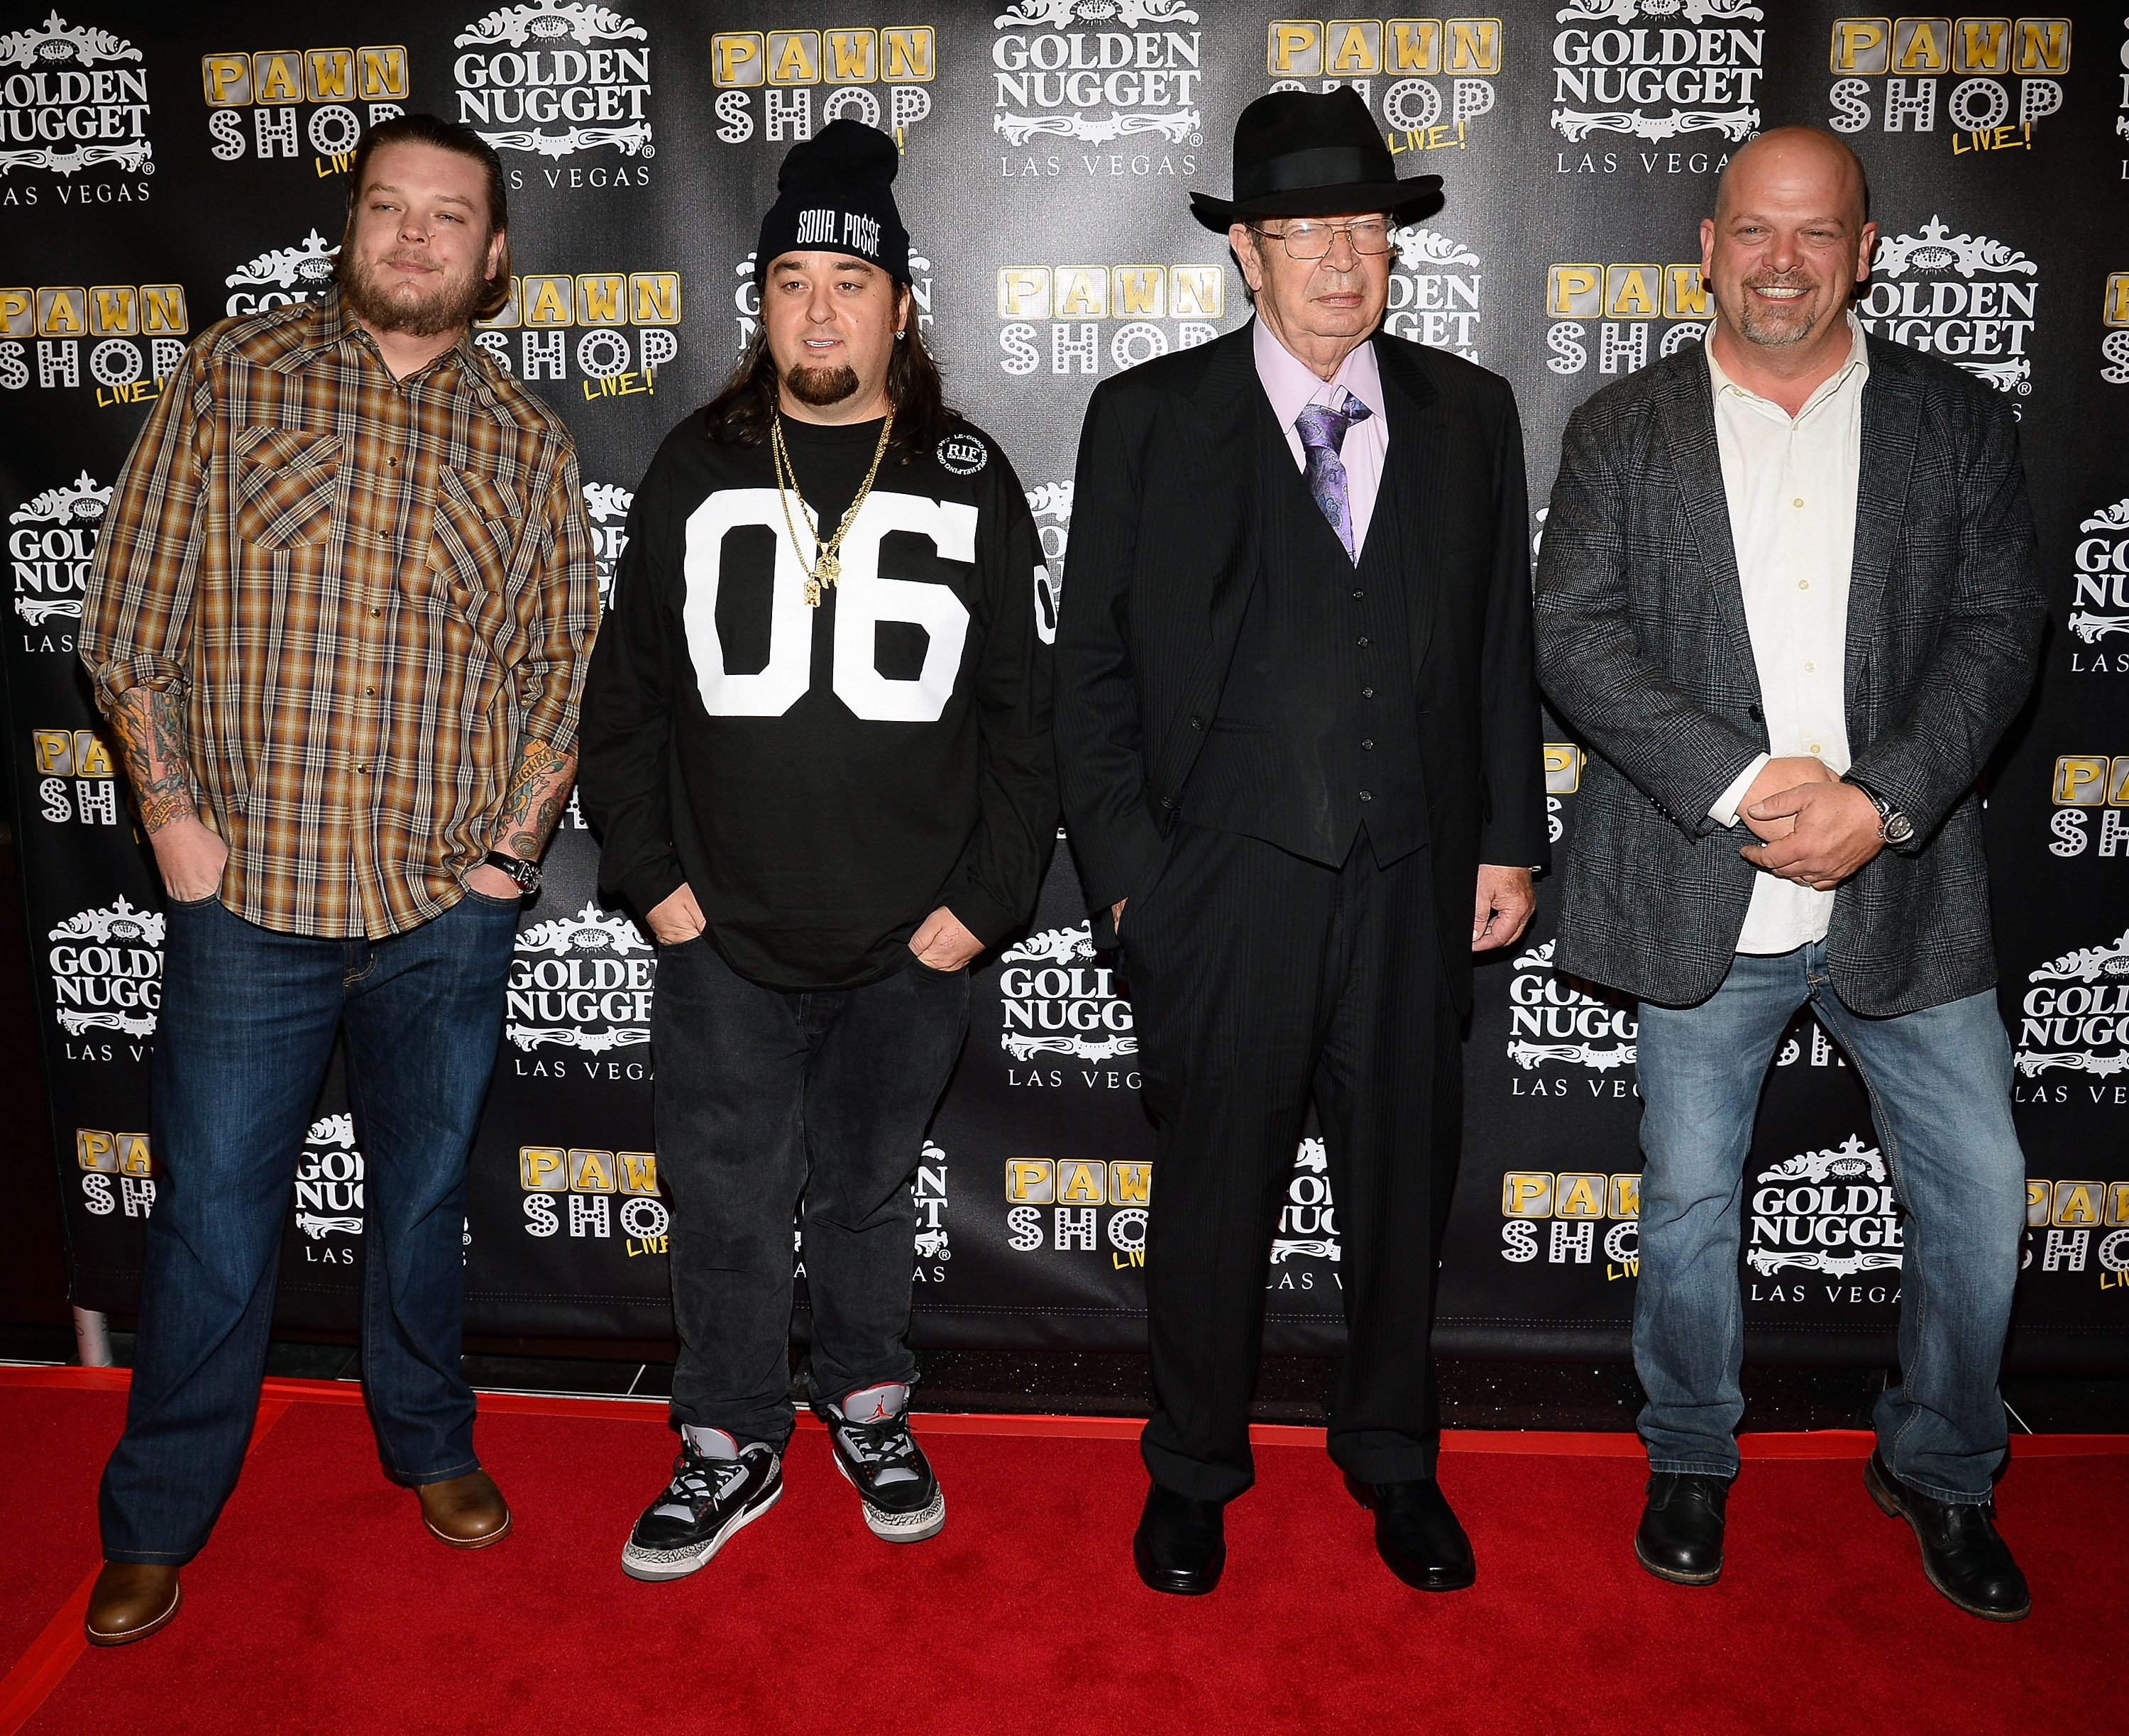 Pawn Stars: The Richest Stars on the Show